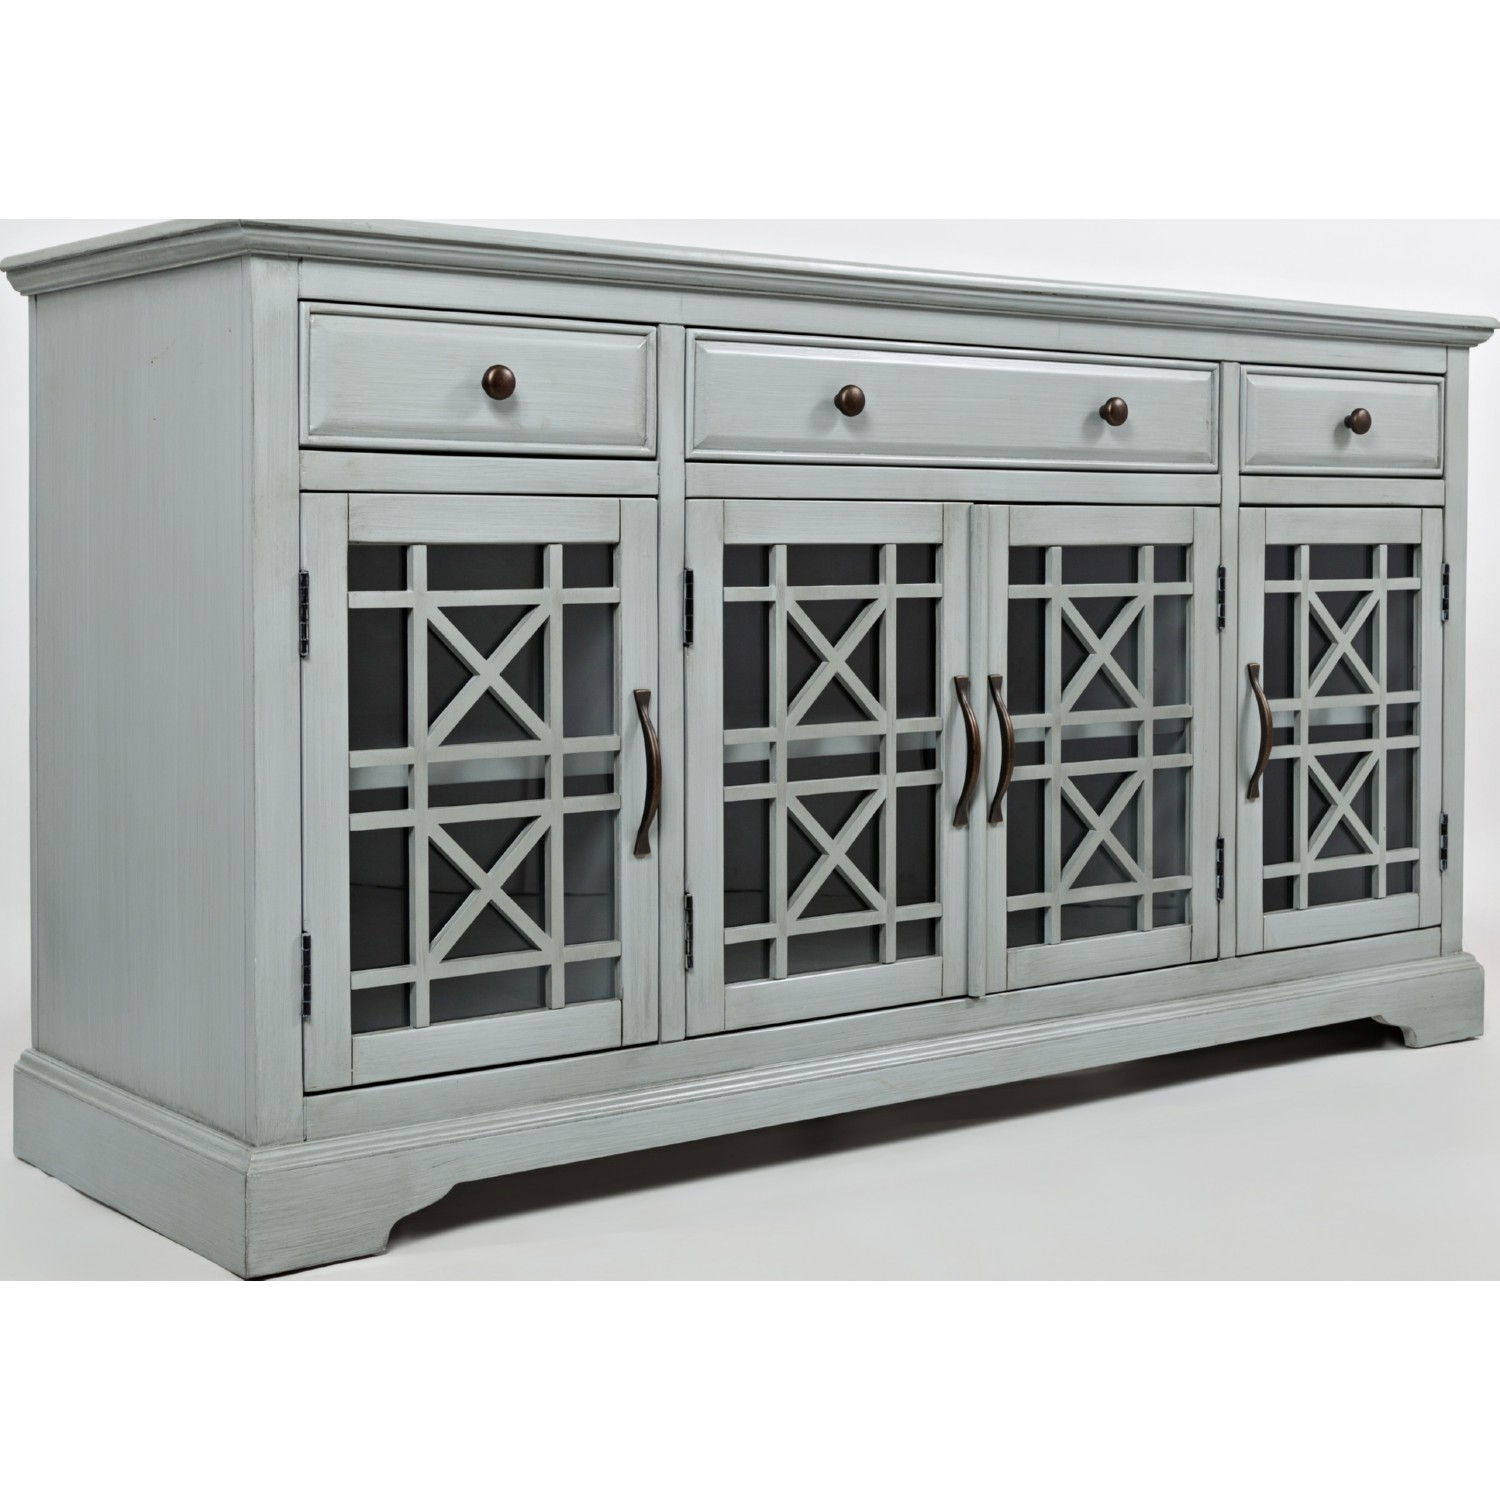 jofran accent cabinet table craftsman three drawer media unit antique blue inch round outdoor tablecloth oval coffee decor coastal themed lamps knotty pine gray end target